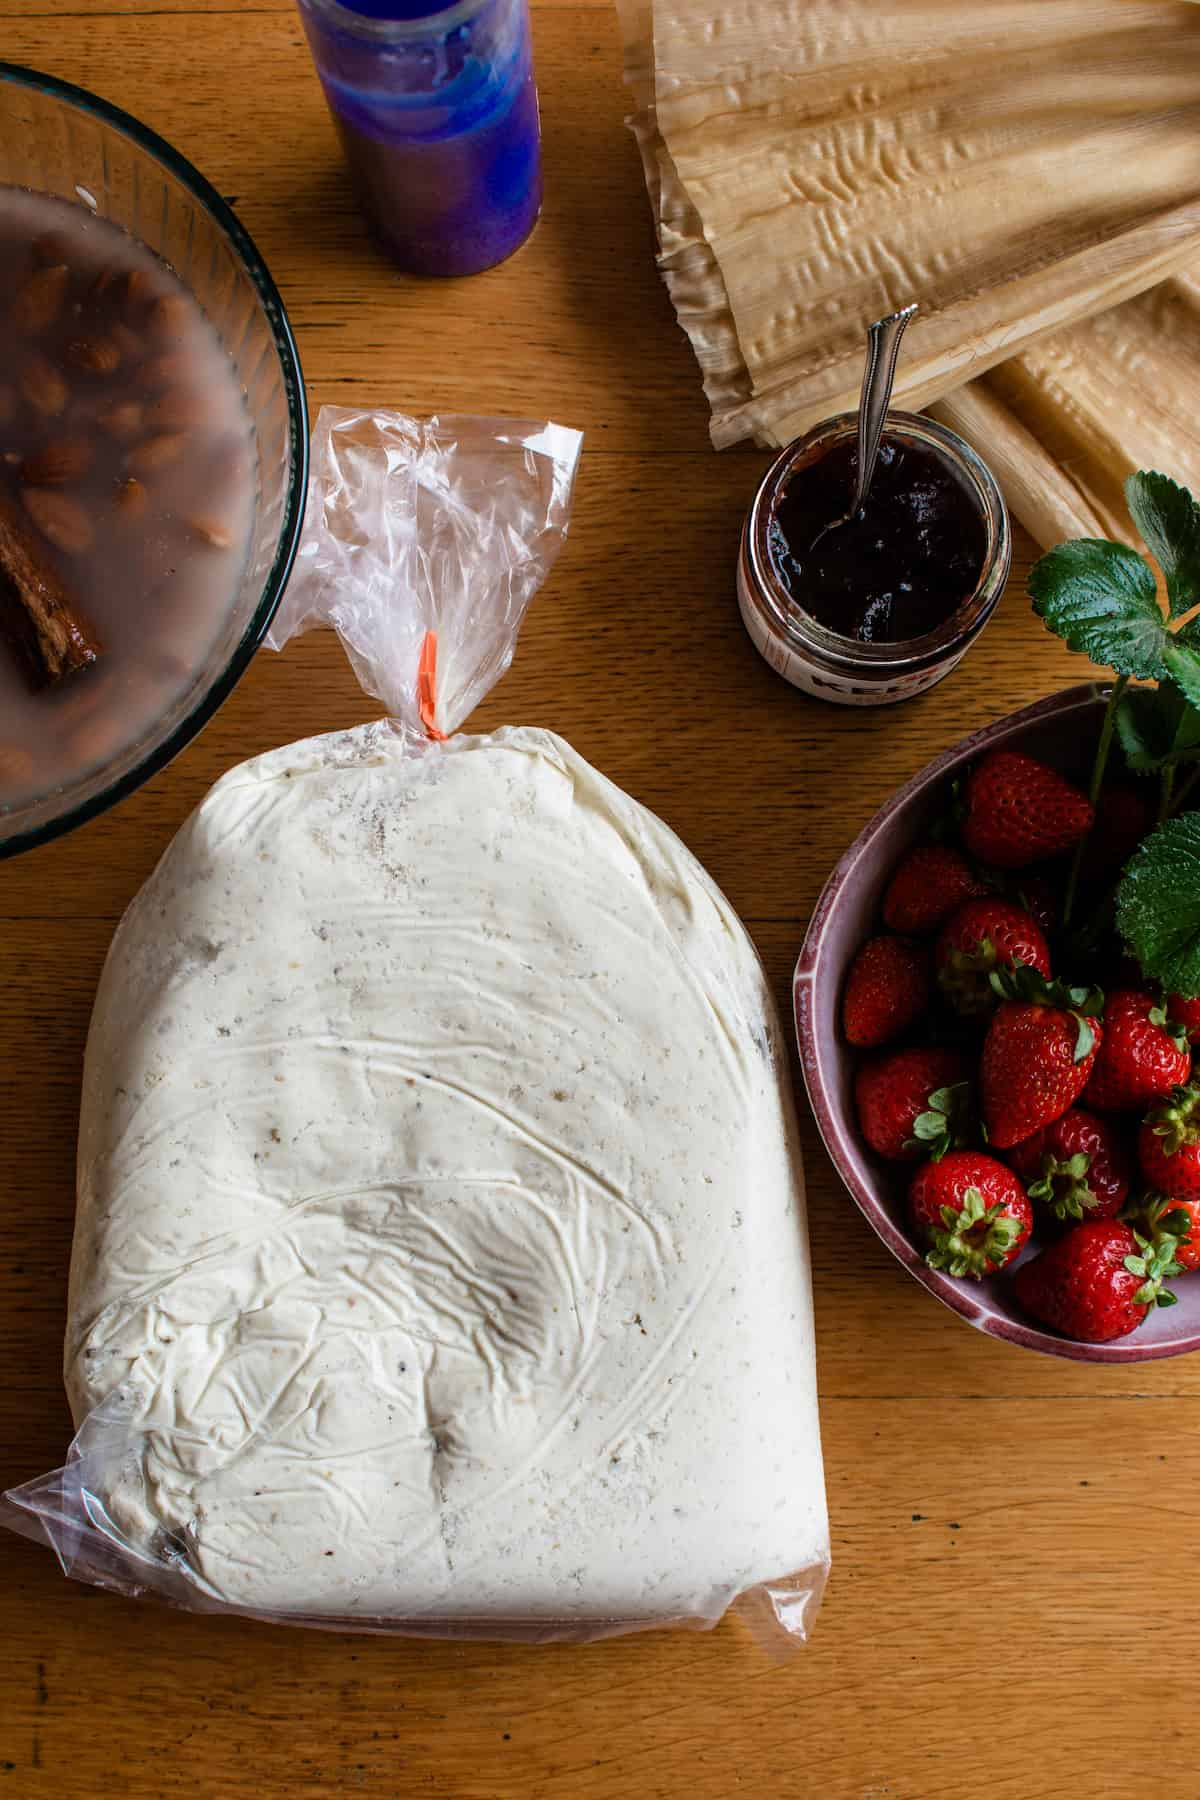 Ingredients for making strawberry tamales including fresh masa, strawberries, strawberry jam, corn husks on a wood table.